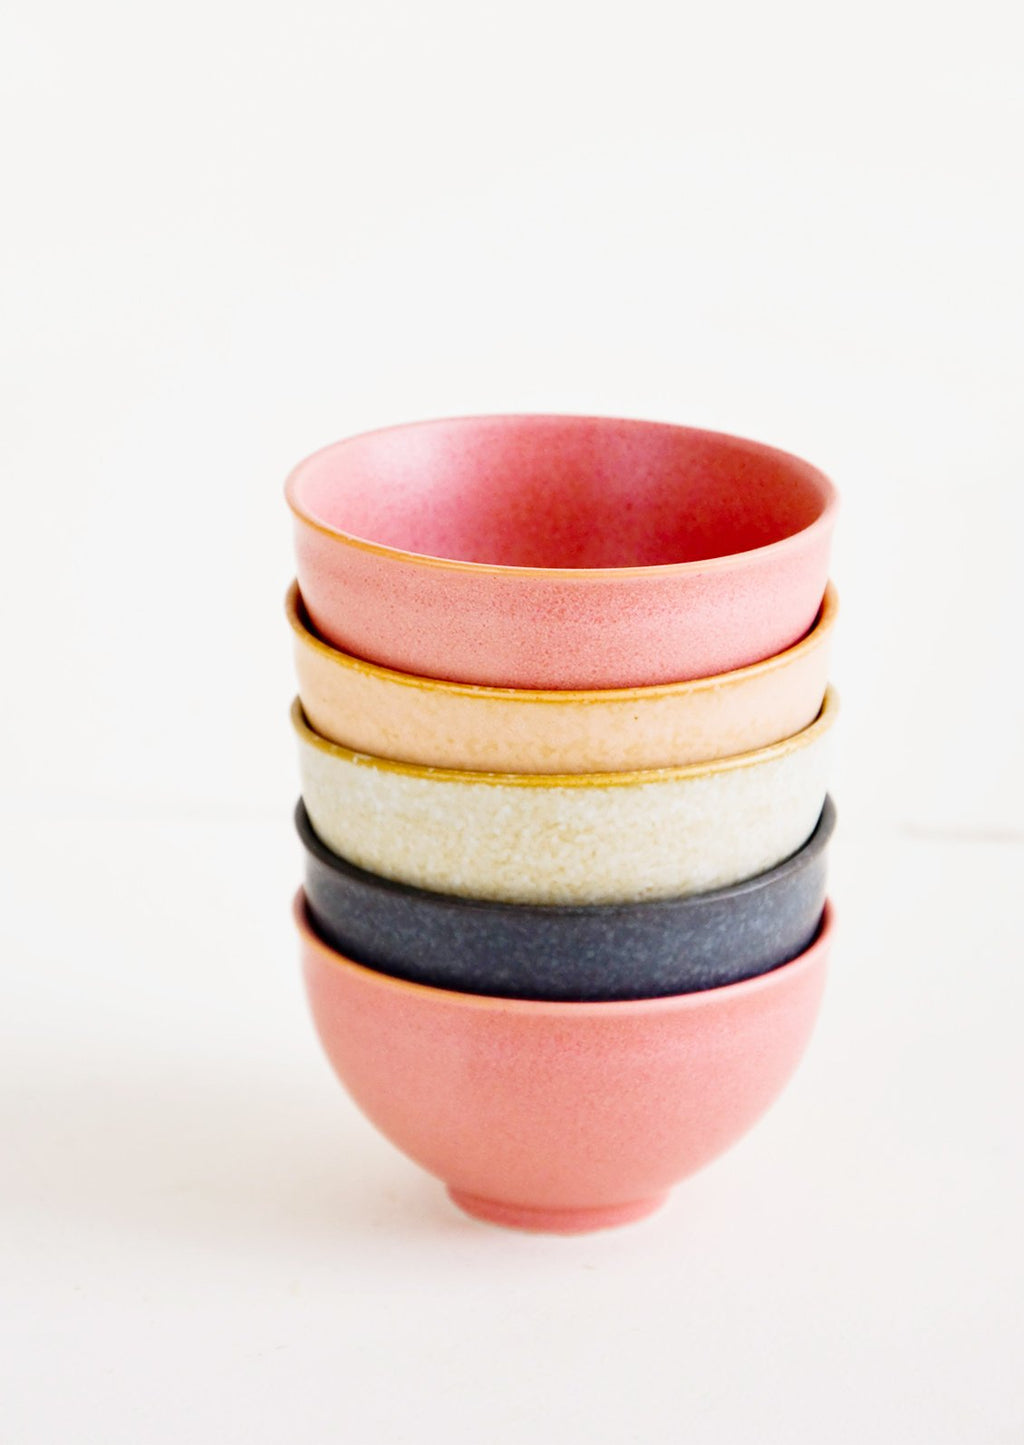 2: Stacked tower of small ceramic bowls in pink, peach, grey and black colors